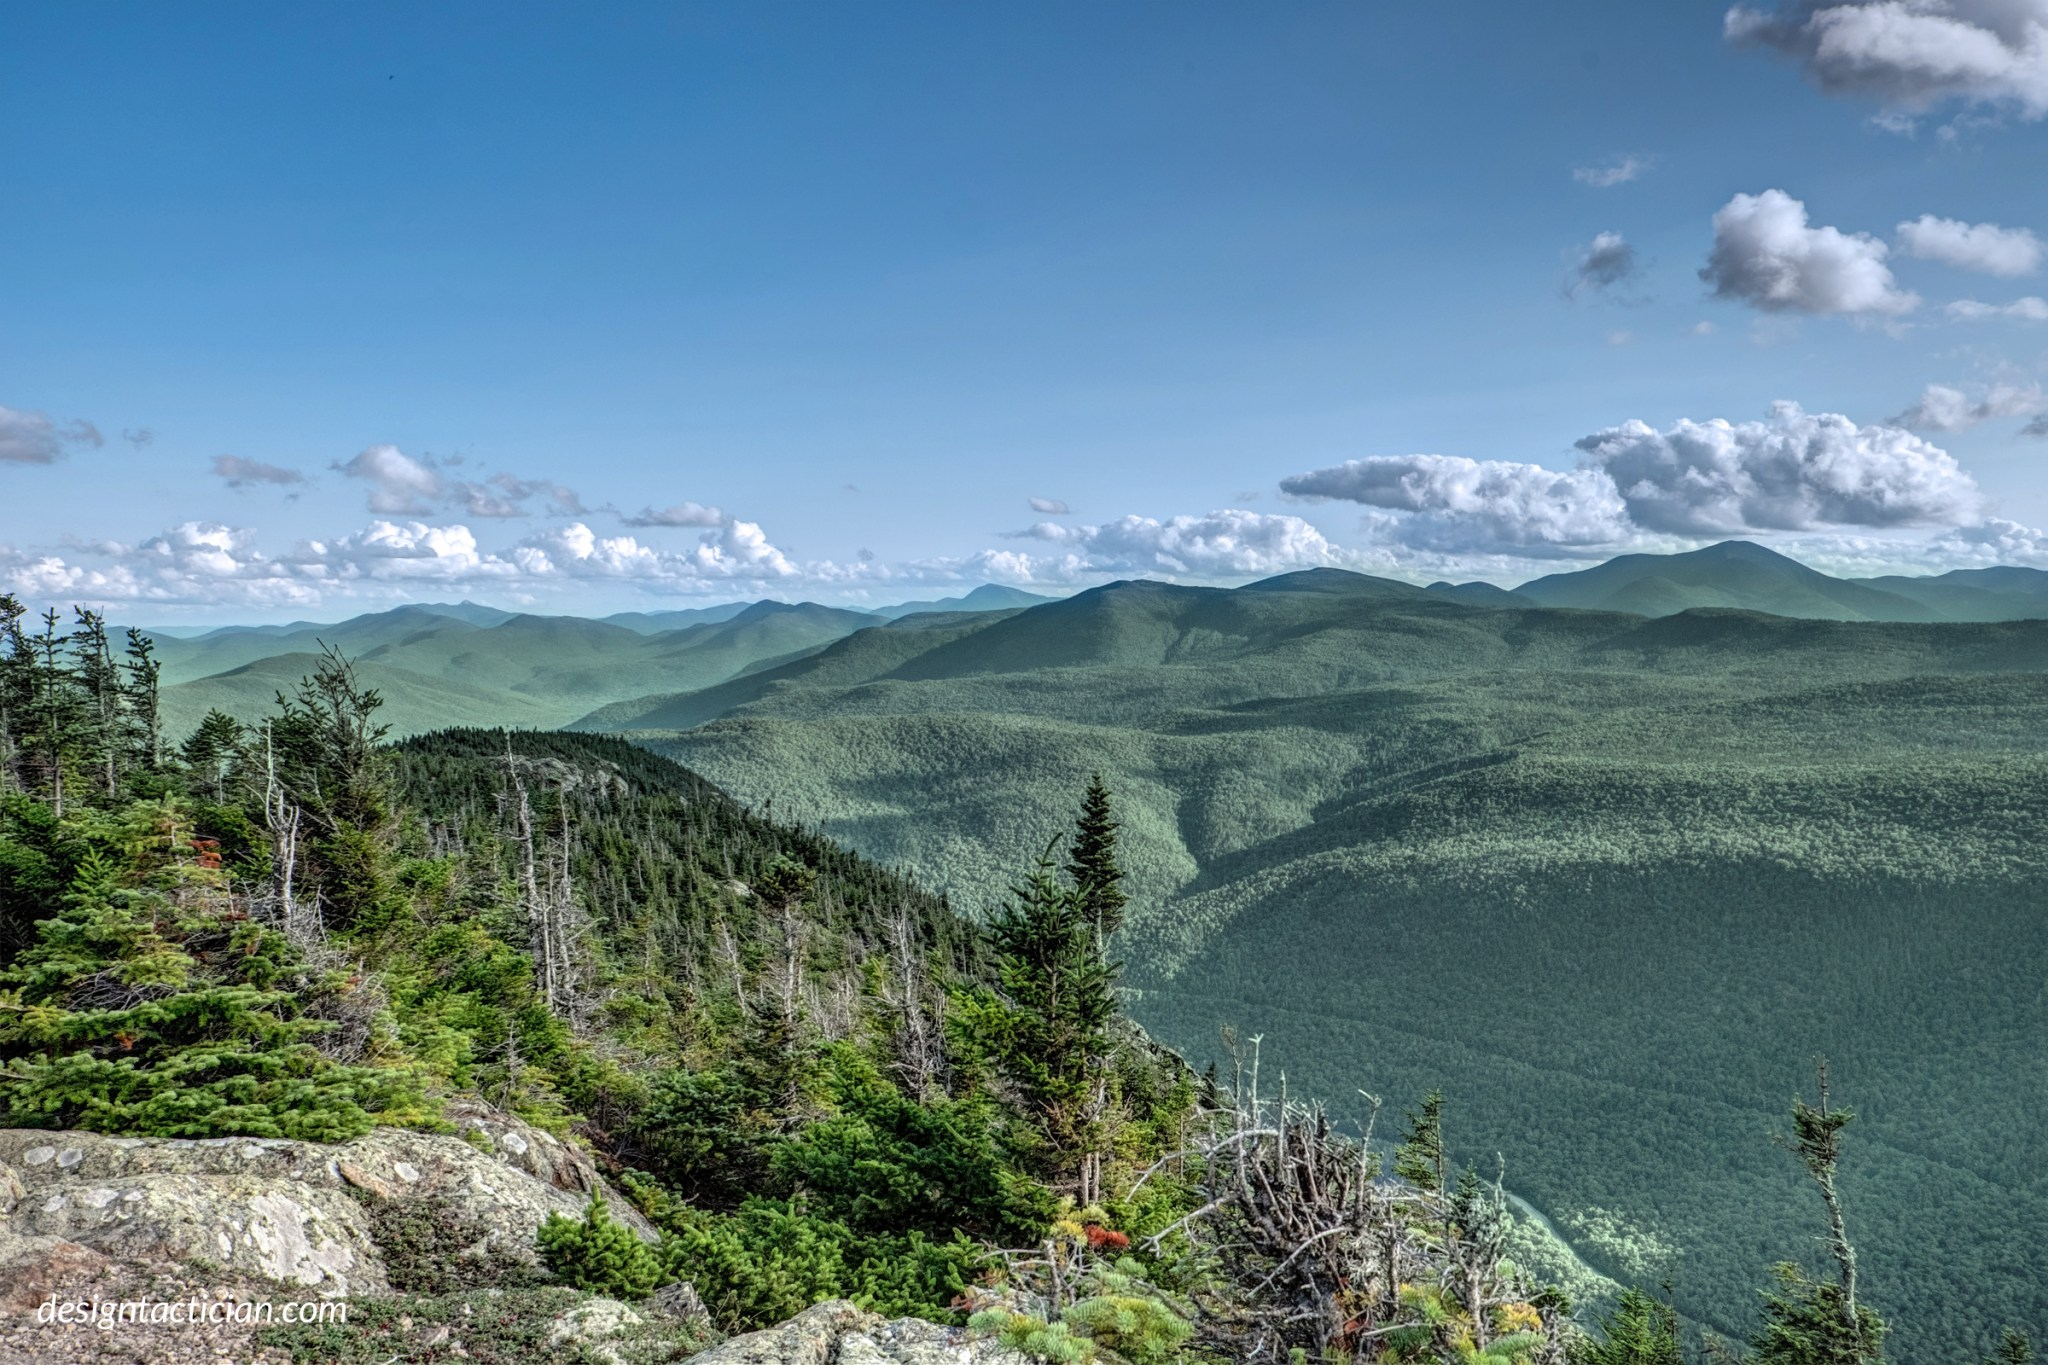 Mt. Webster in Crawford Notch, New Hampshire